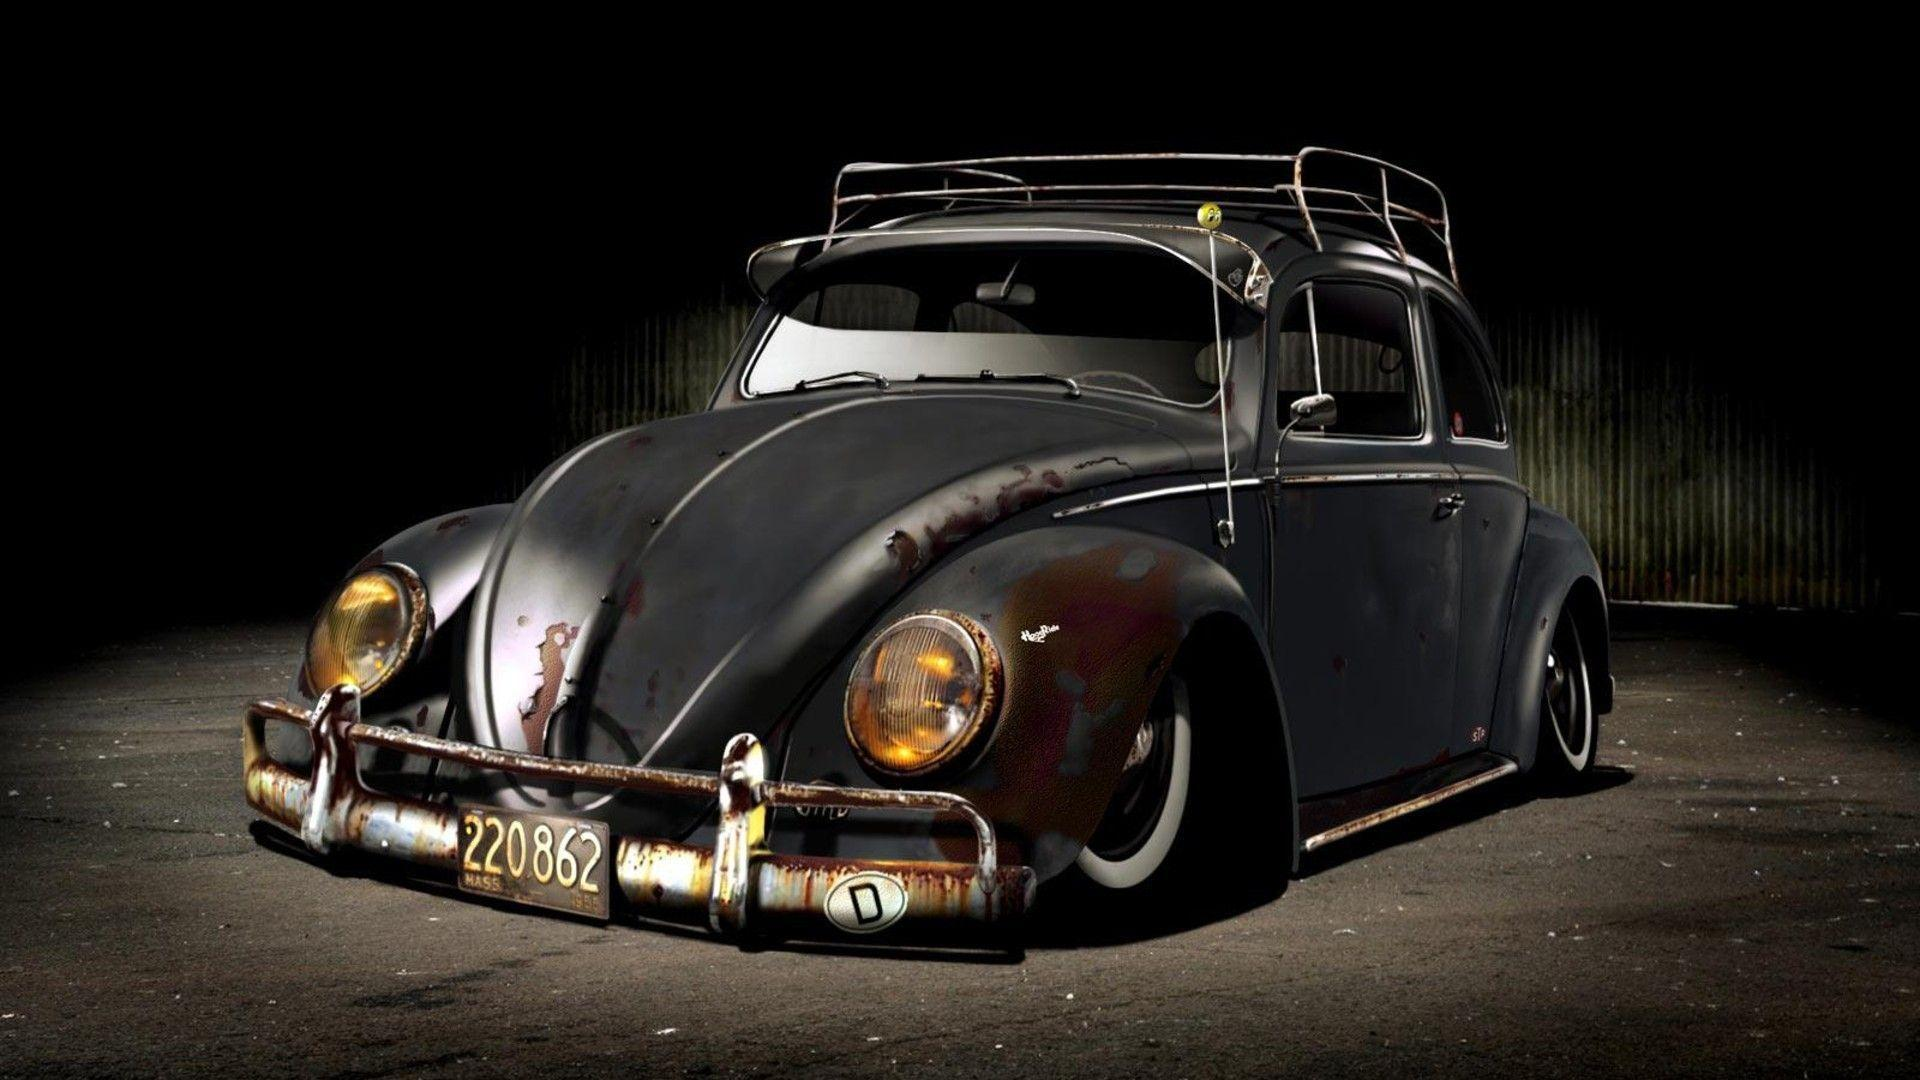 Volkswagen Beetle Wallpapers Group